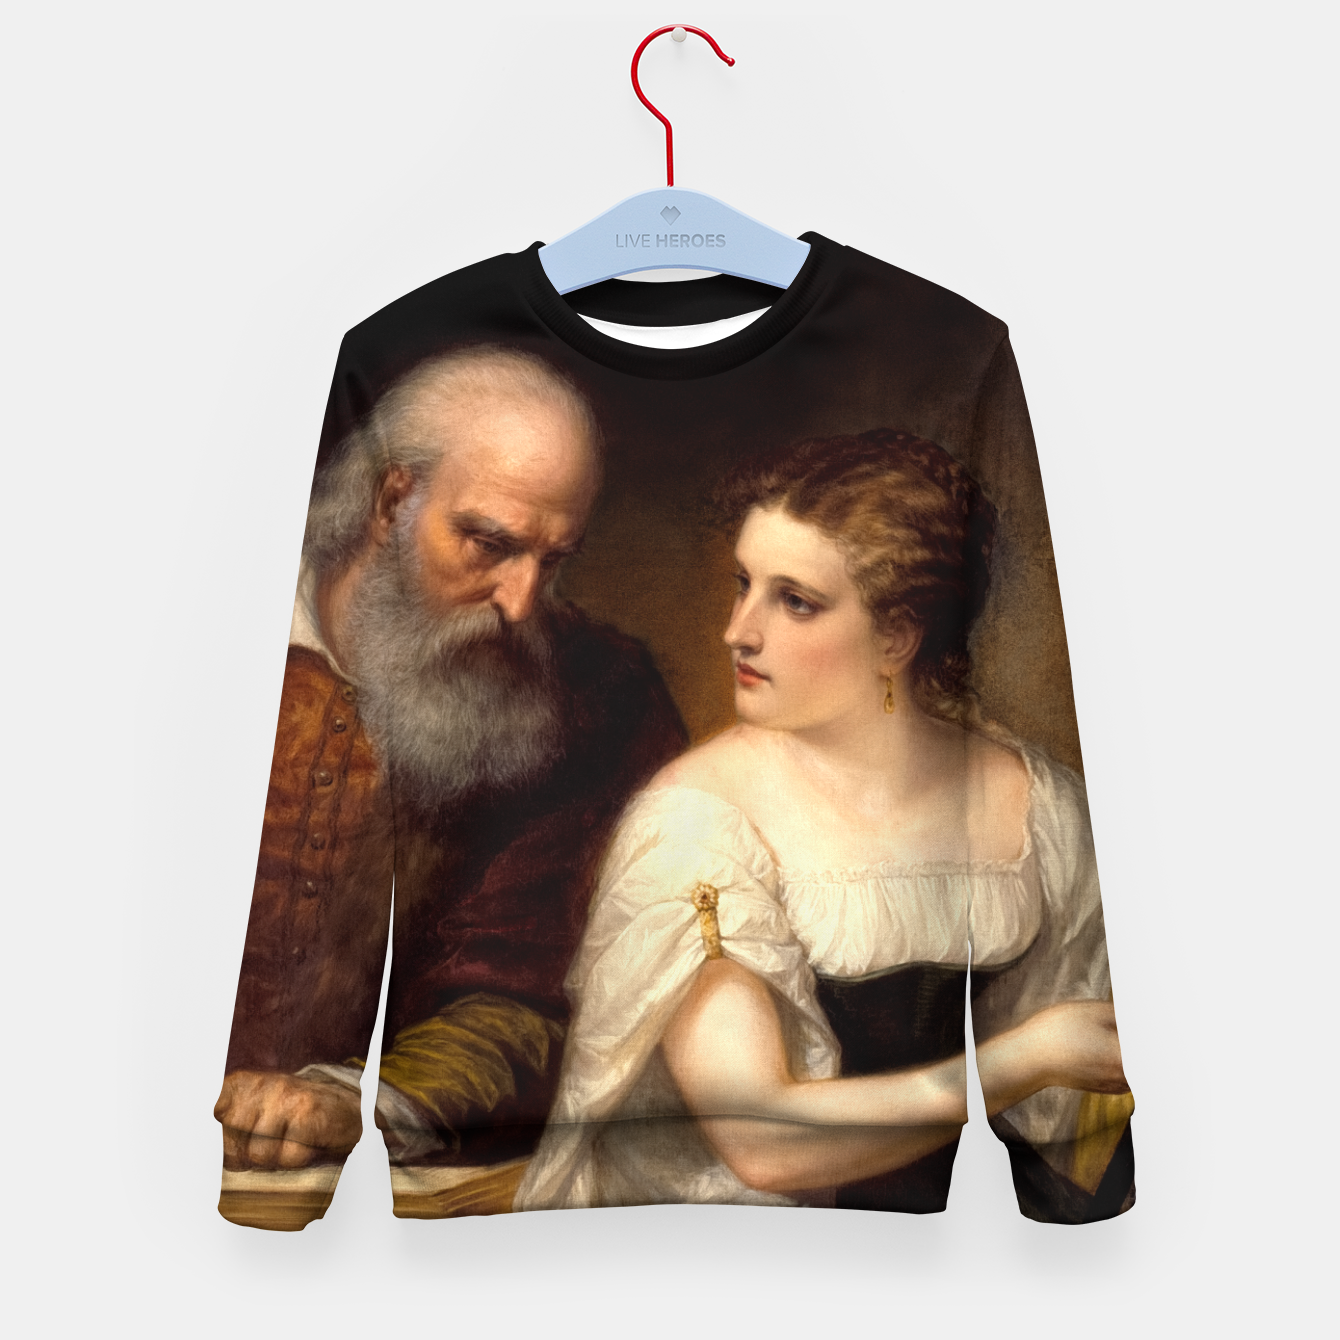 Zdjęcie Philosophy and Christian Art by Daniel Huntington Kid's sweater - Live Heroes